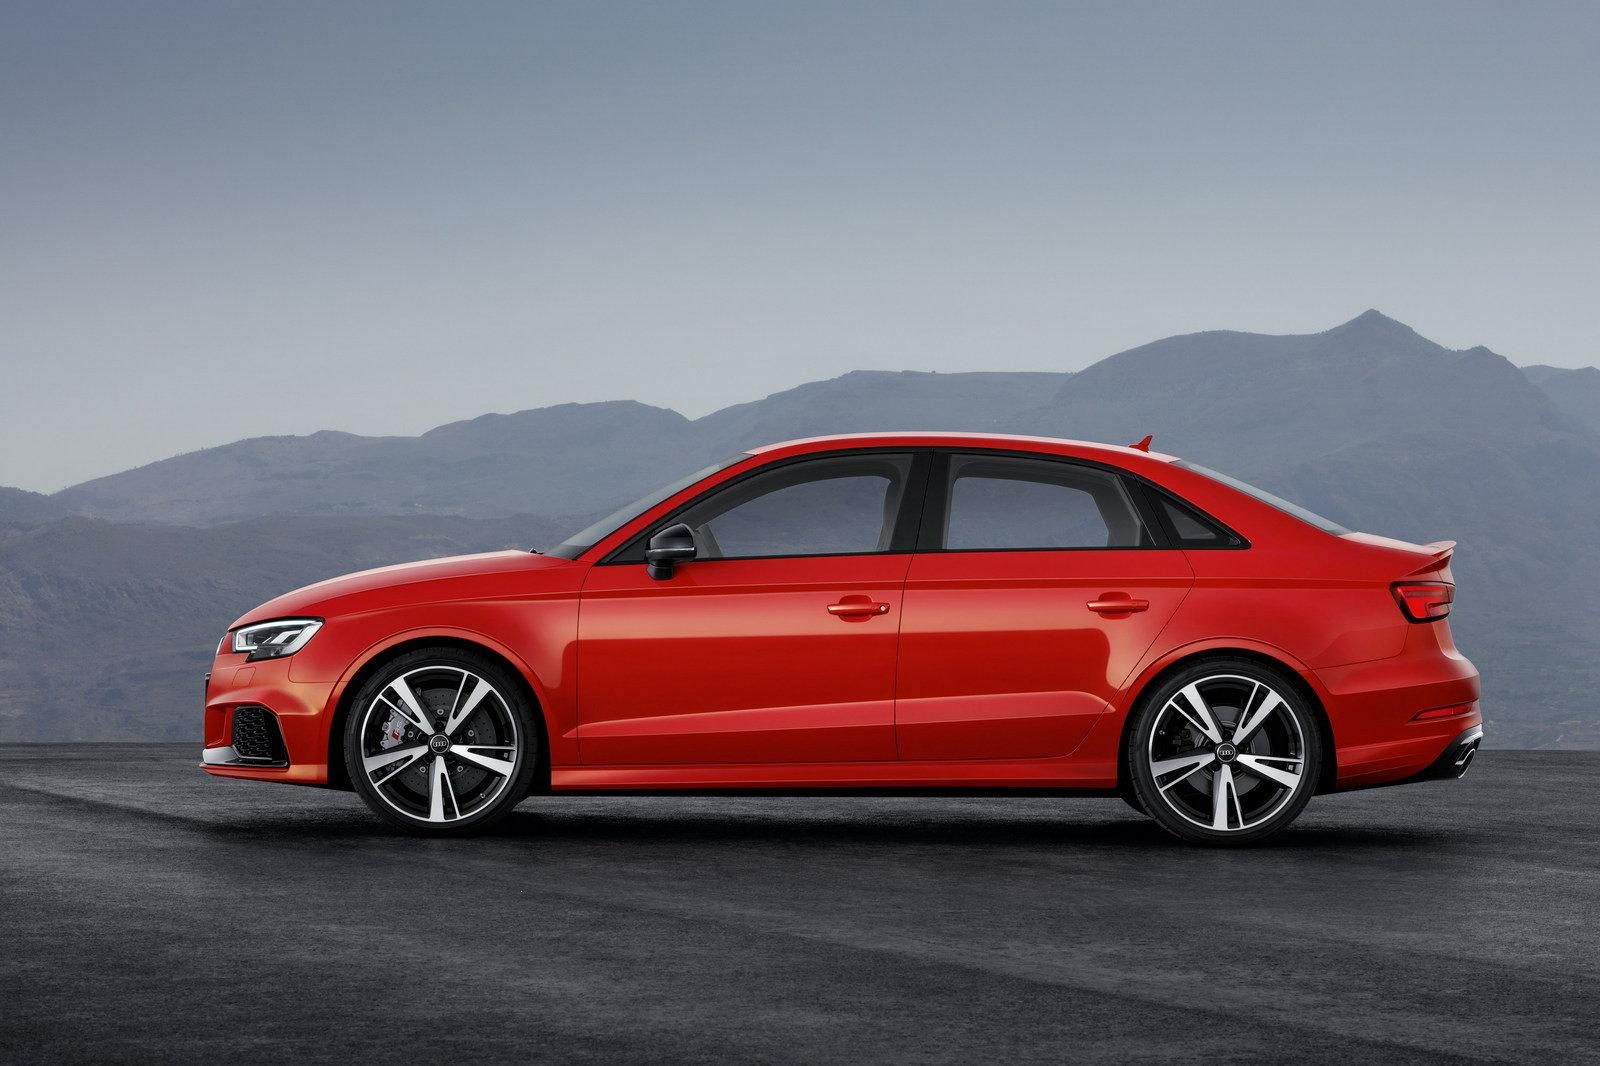 2019 Audi RS 5 Coupe Red Color